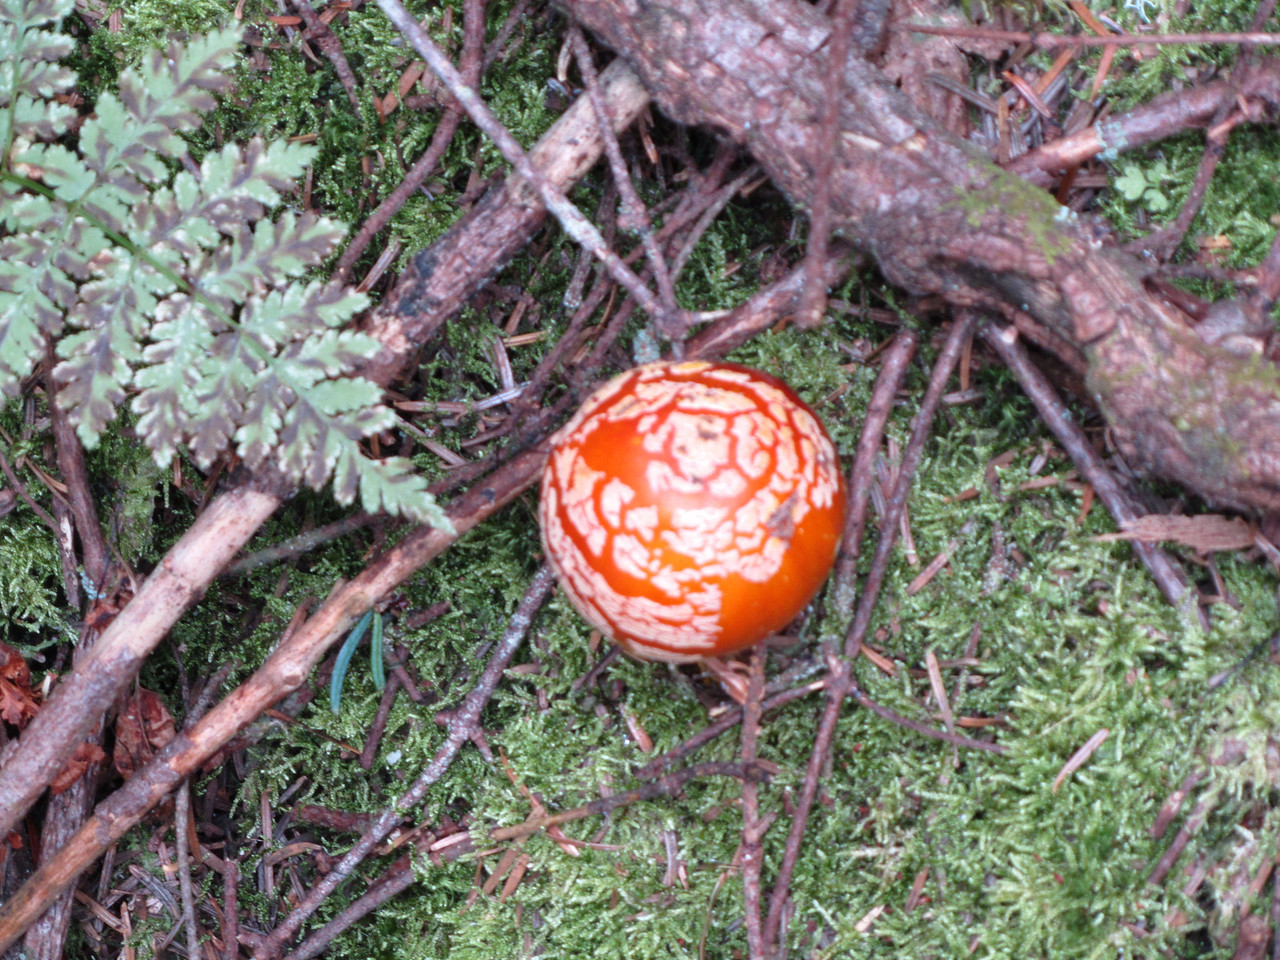 There are always some interesting mushrooms on the hike. This one tasted delicious. I shared it with Bob Marley then we continued the hike together.